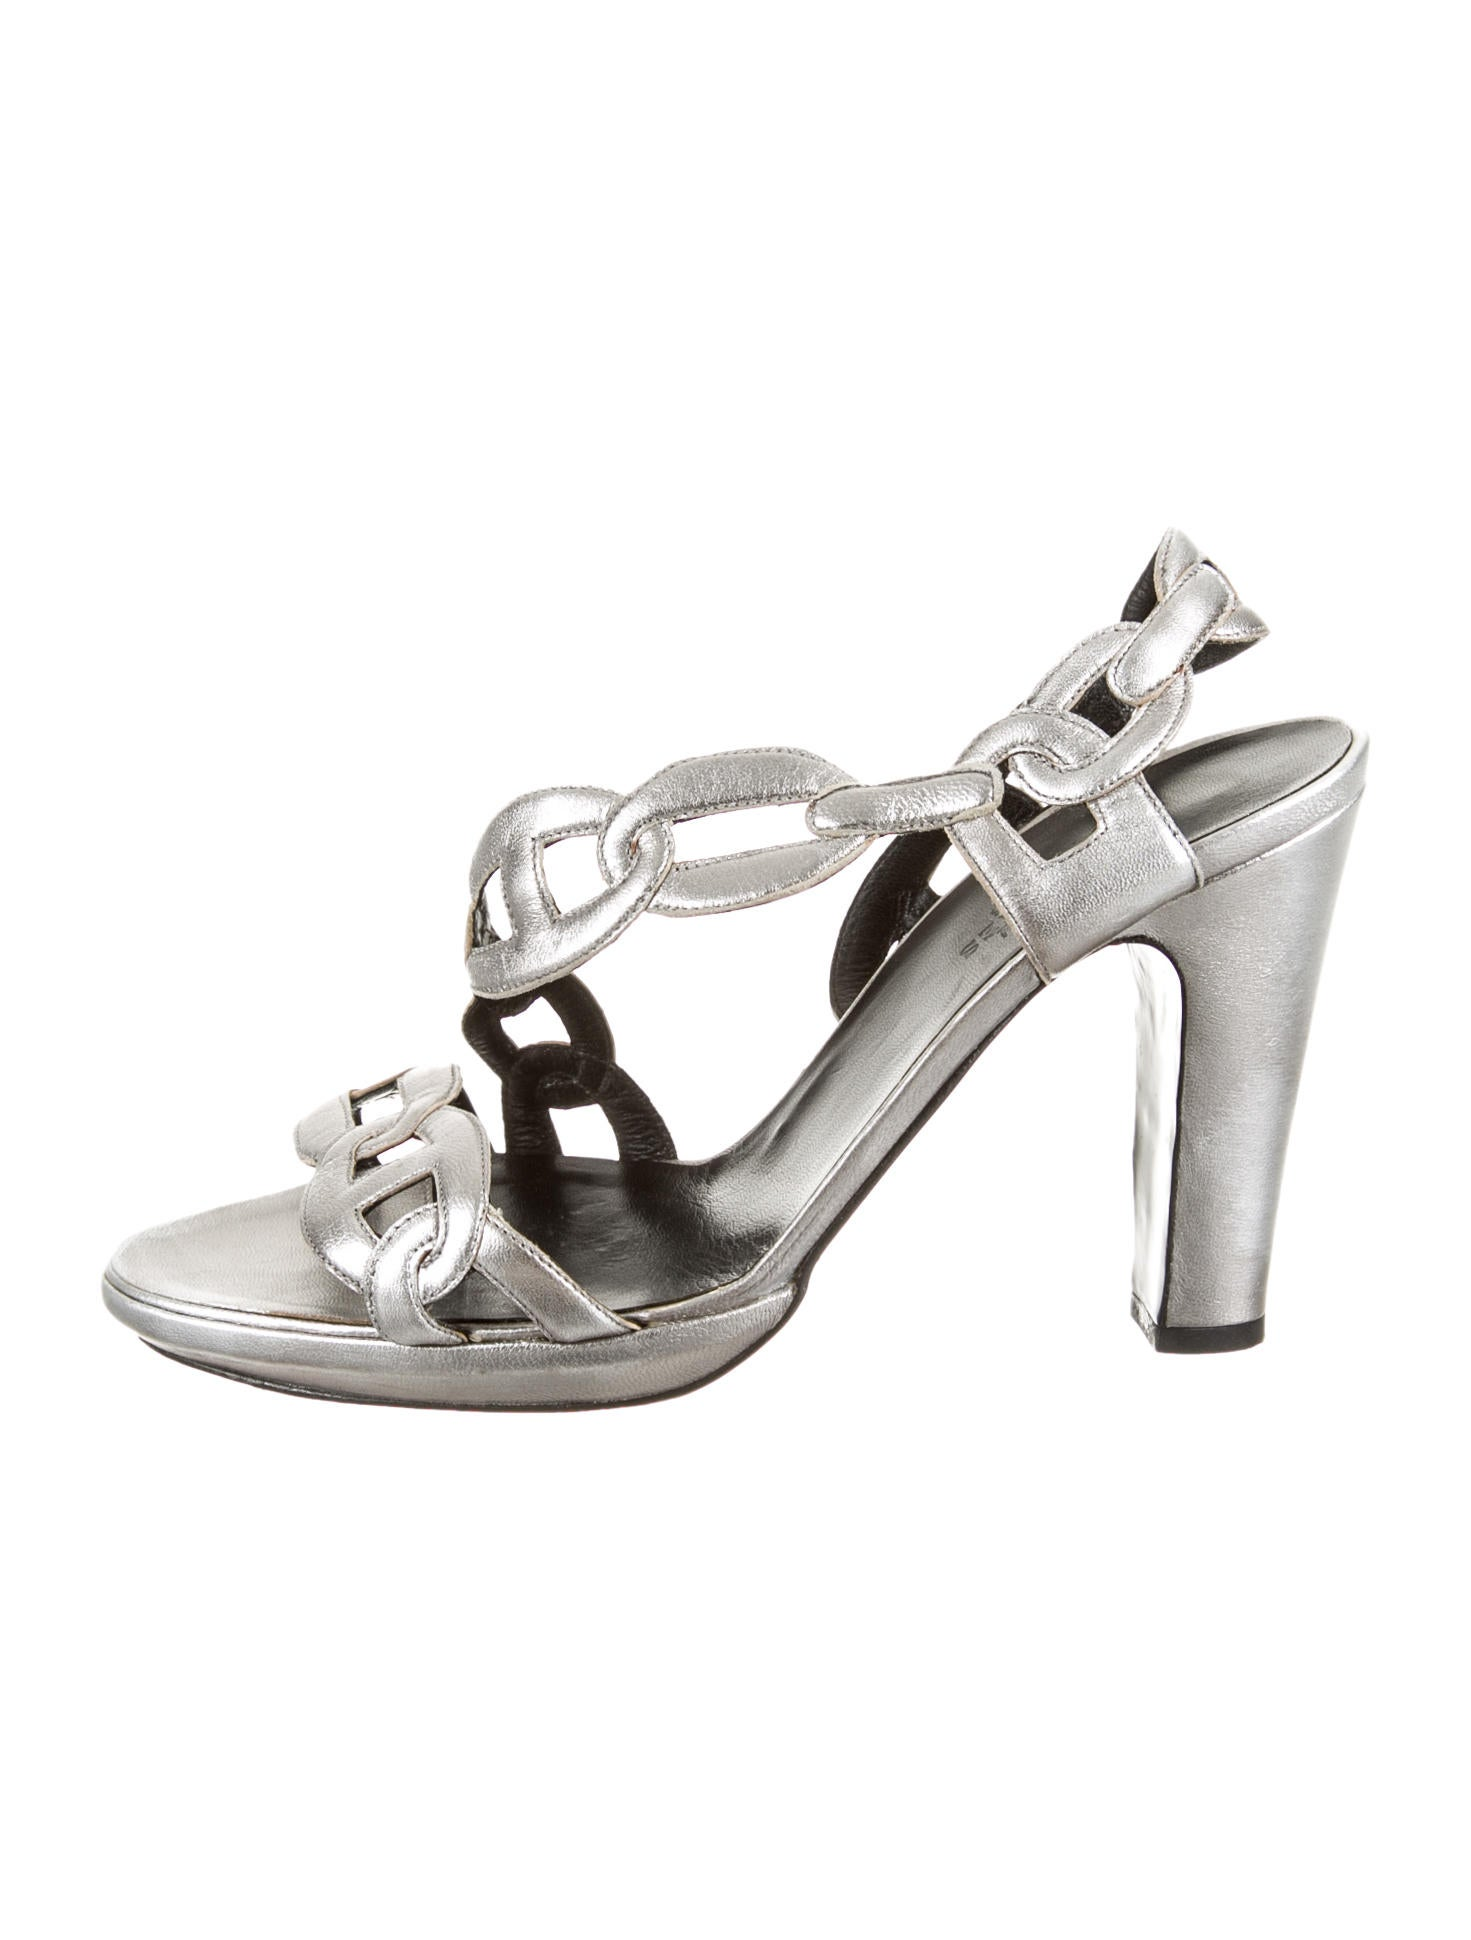 Wonderful Herms Sandals  Shoes  HER48515  The RealReal